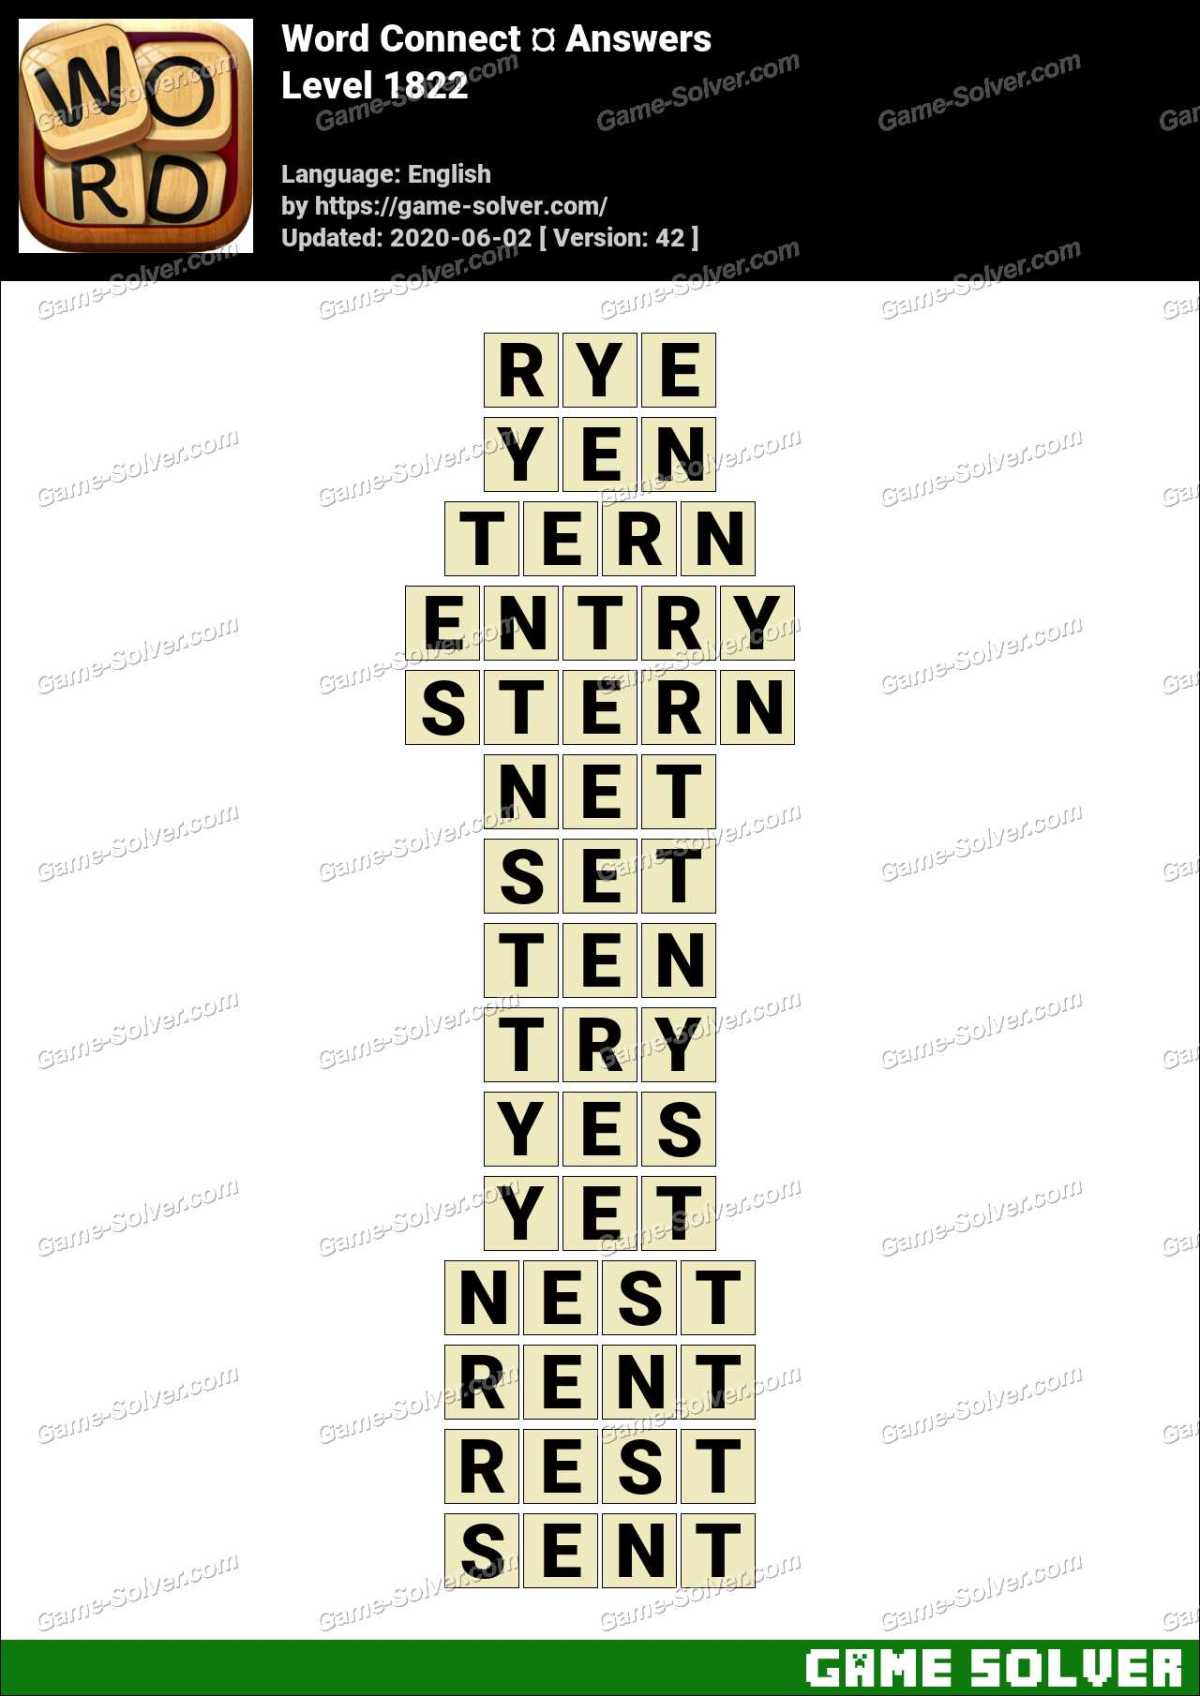 Word Connect Level 1822 Answers